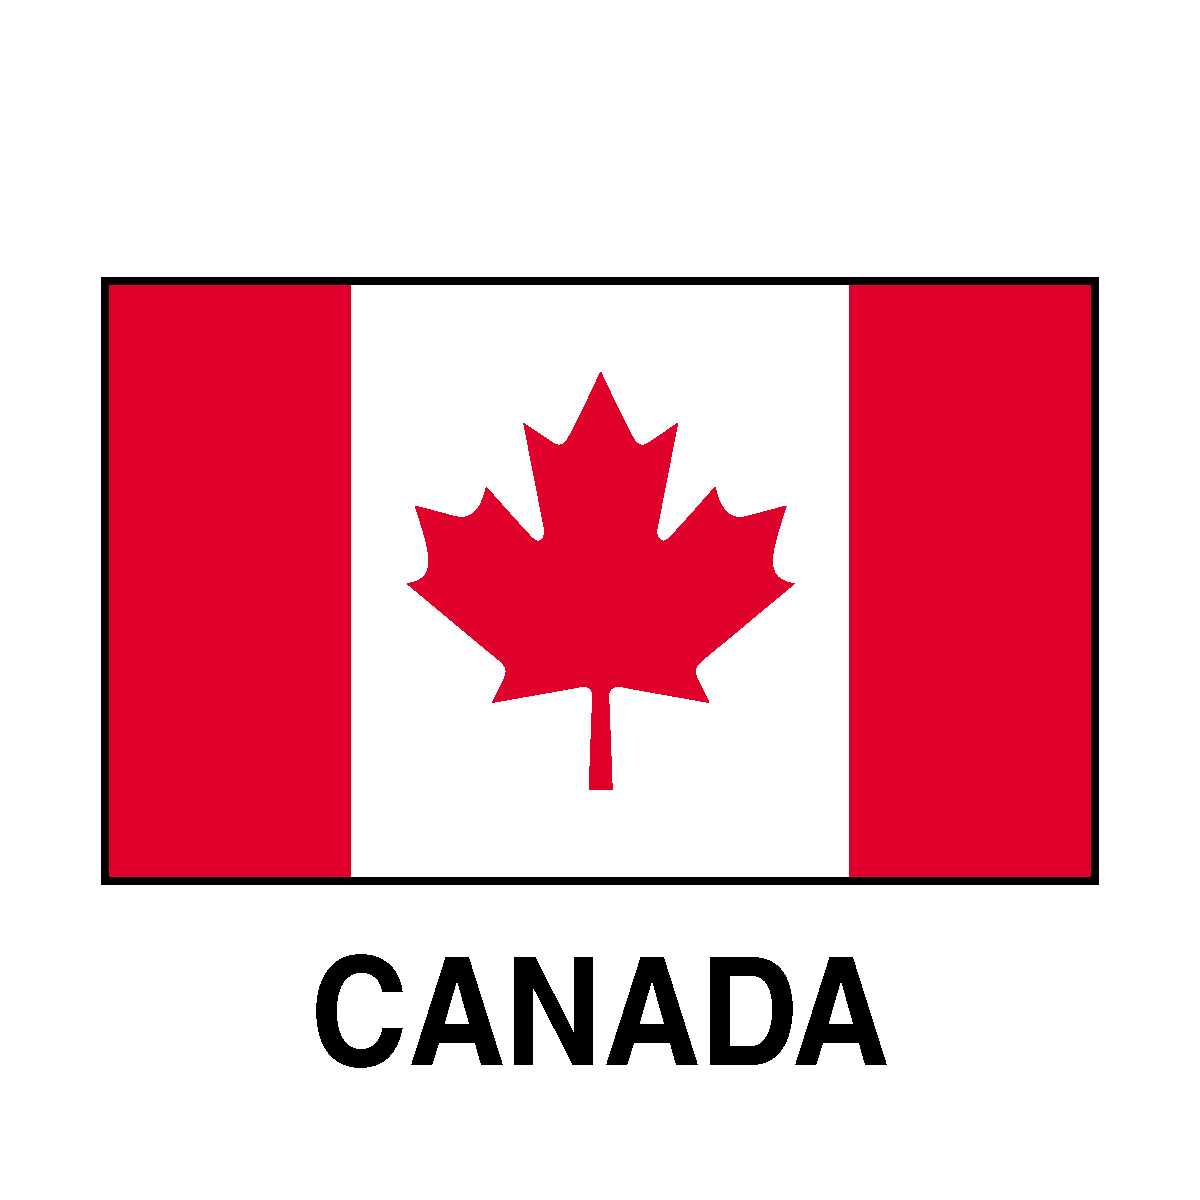 Versatile image with printable canadian flag